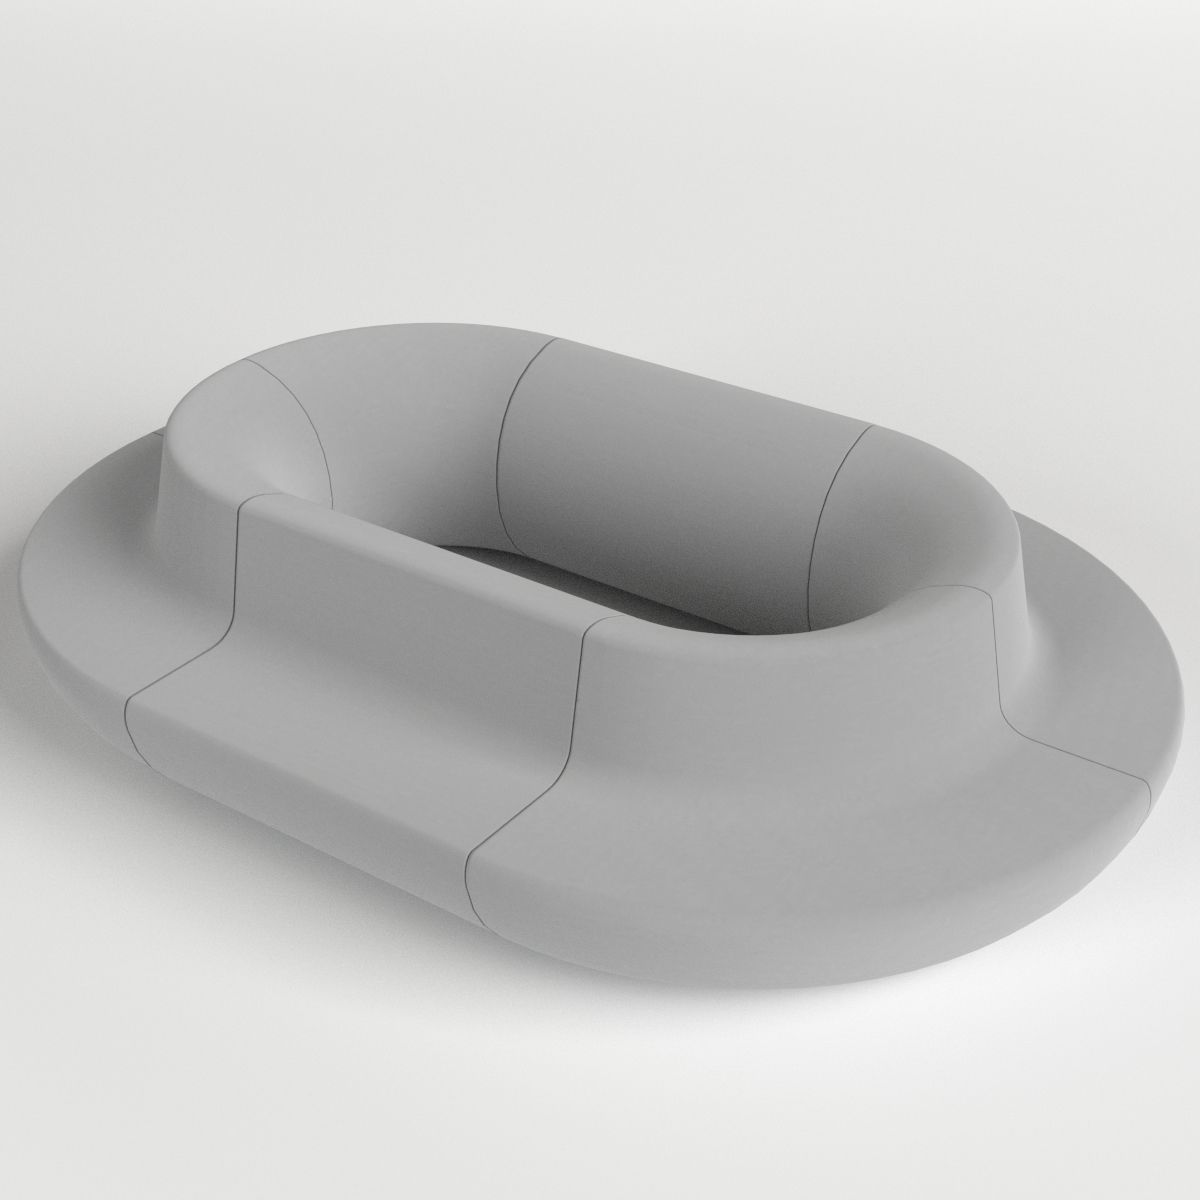 Oval Couch Sofa Couch Sofa Couch Texture Images